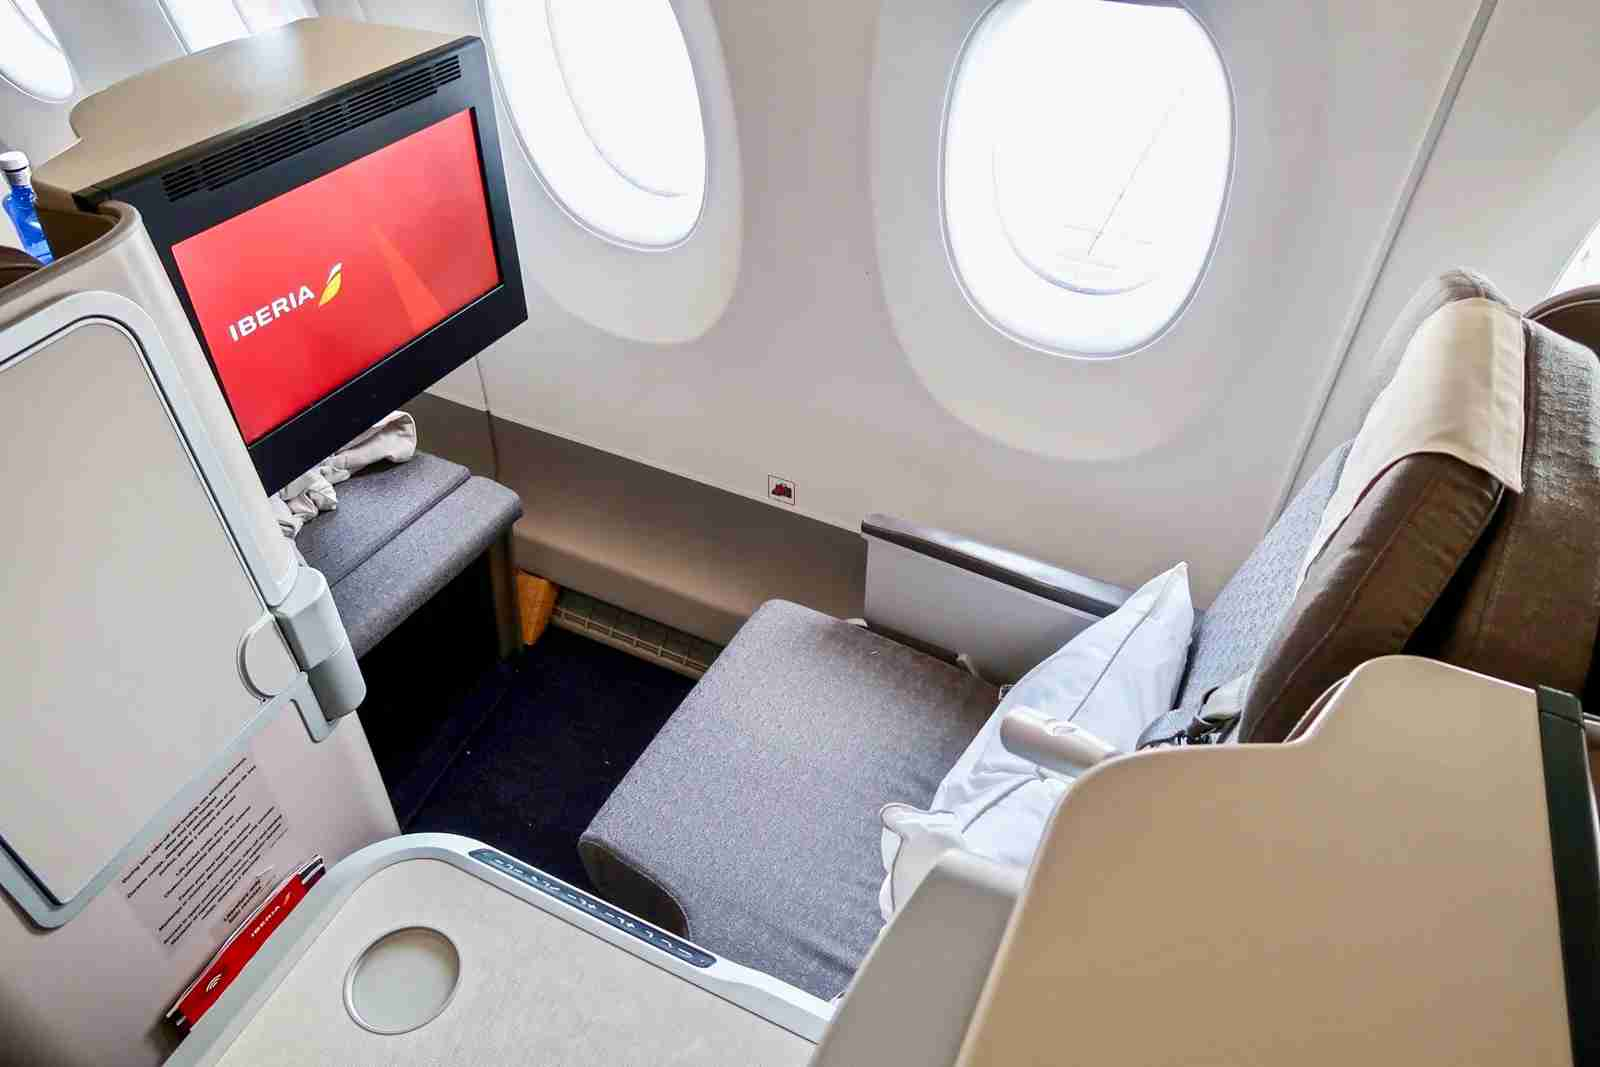 Iberia A350 Business Class (Photo by Christian Kramer/The Points Guy)